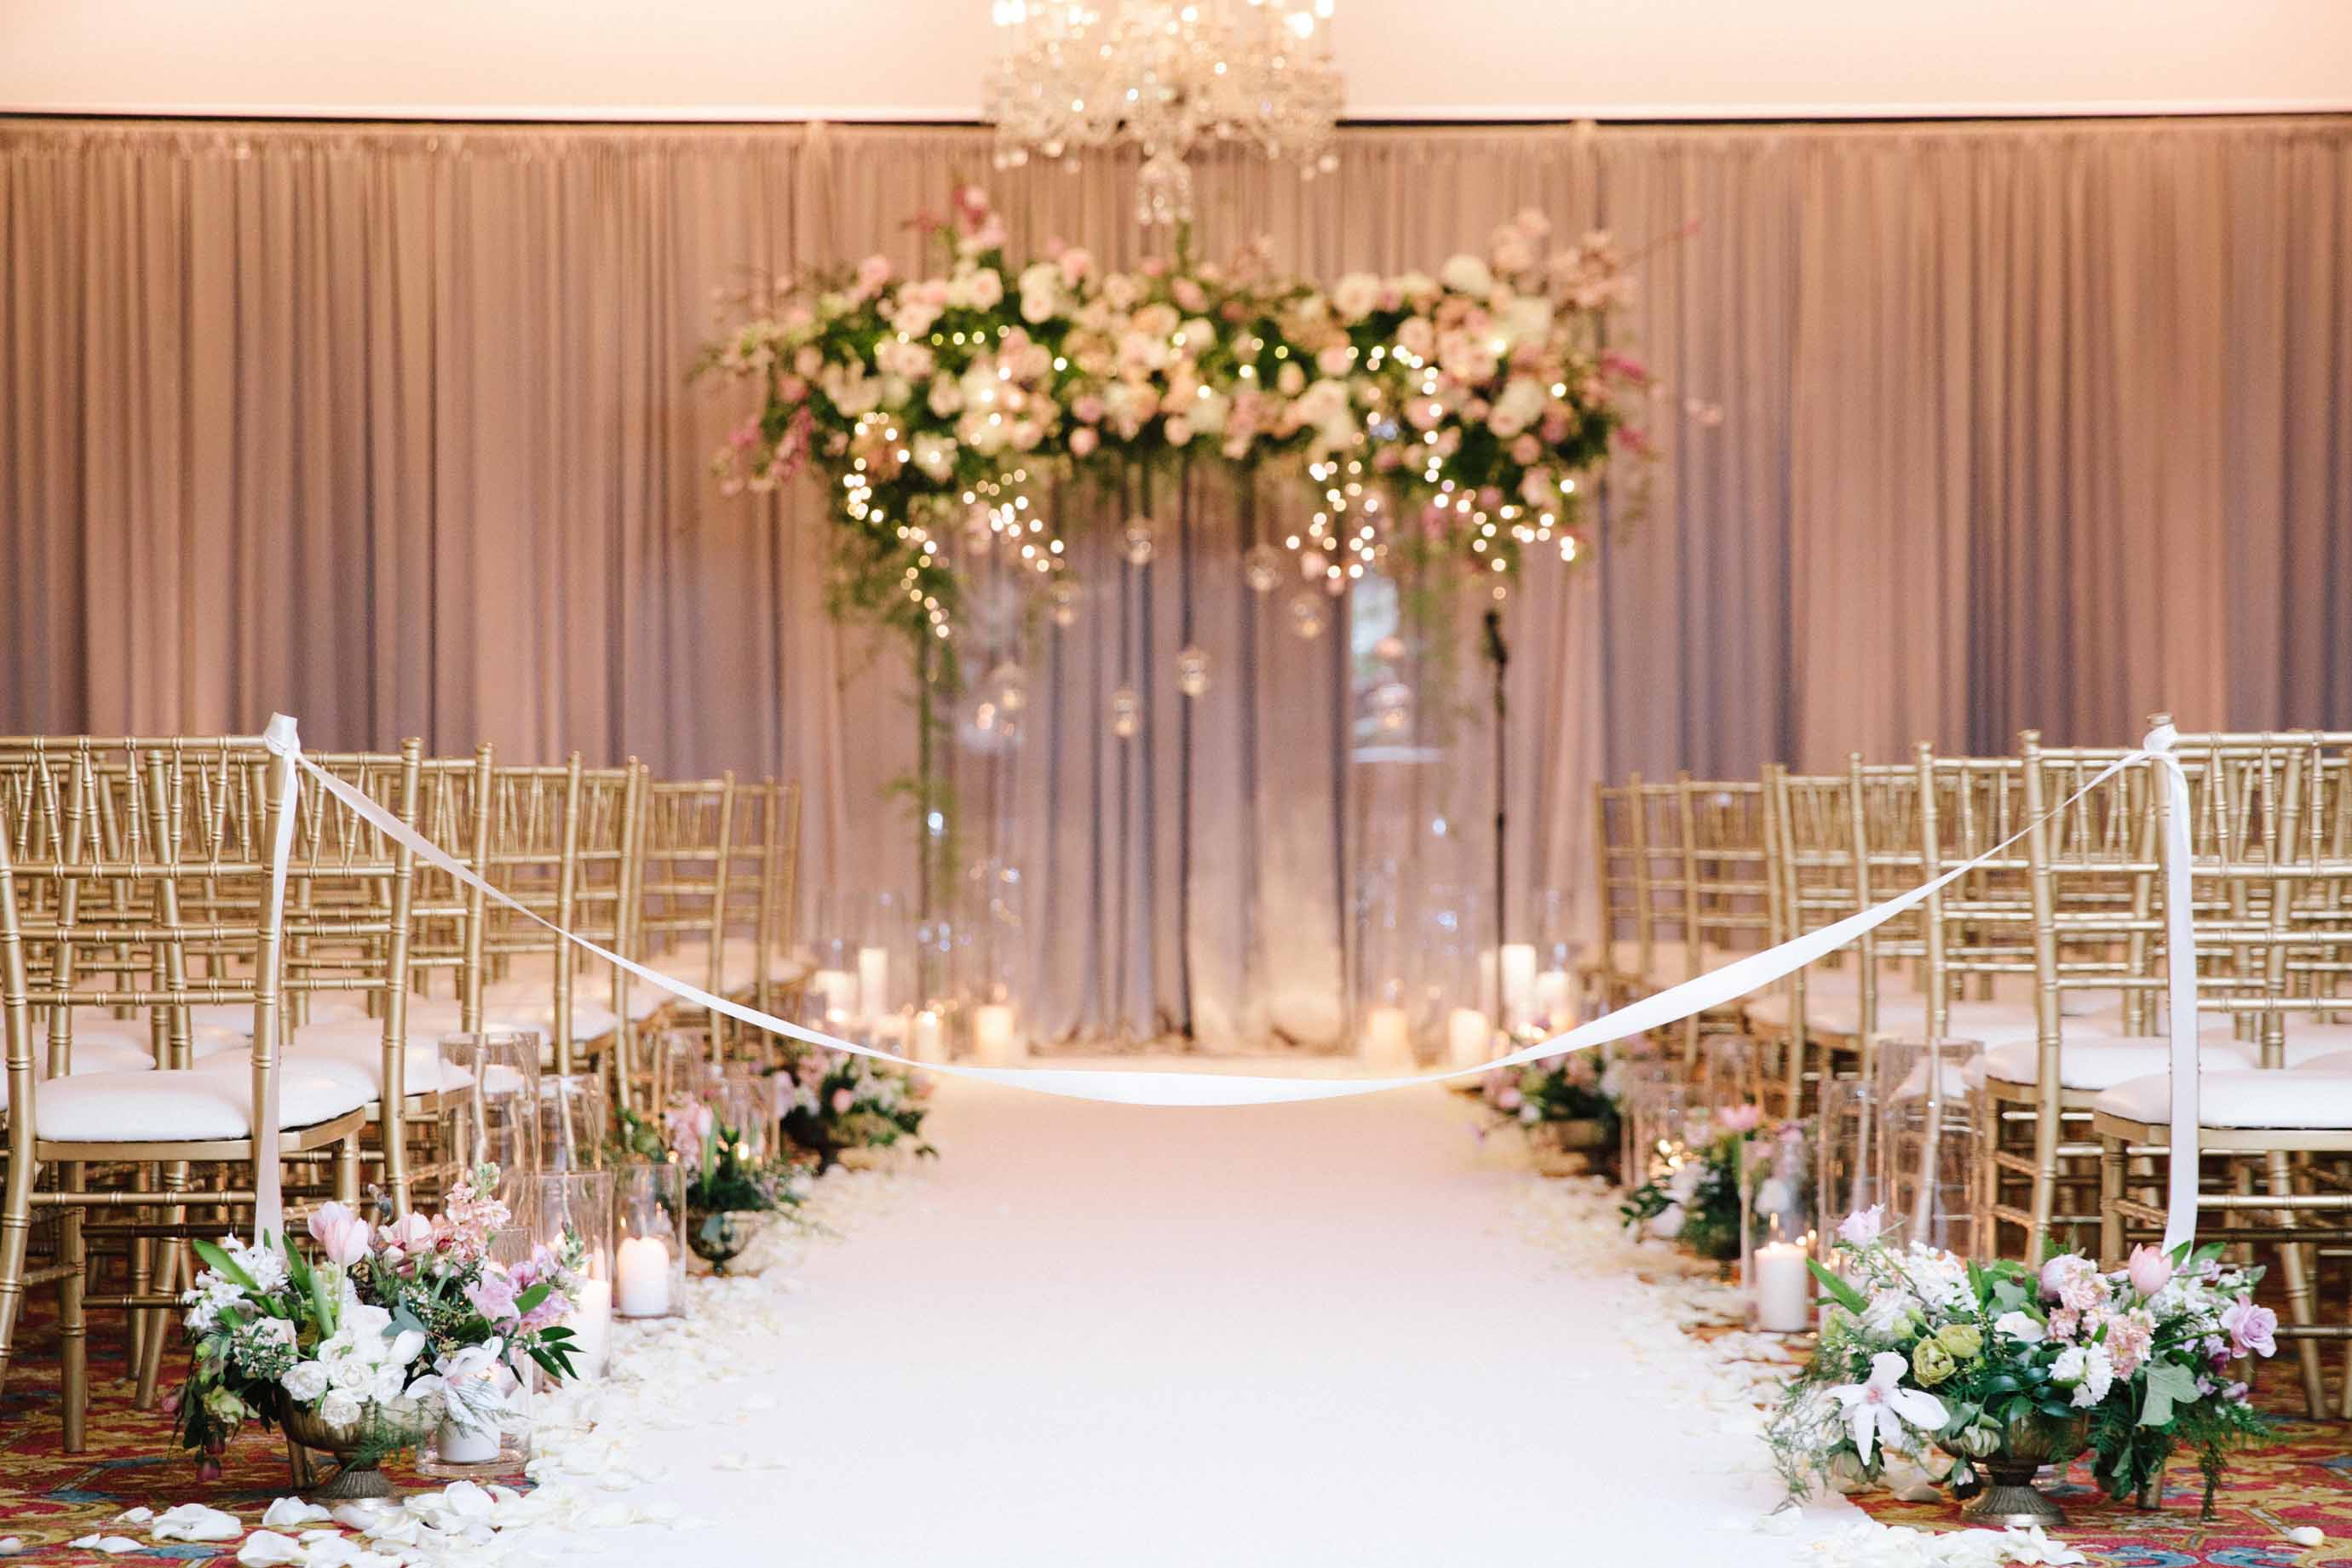 Large spring garden floral arch for wedding ceremony in front of white aisle lined with candles and flowers